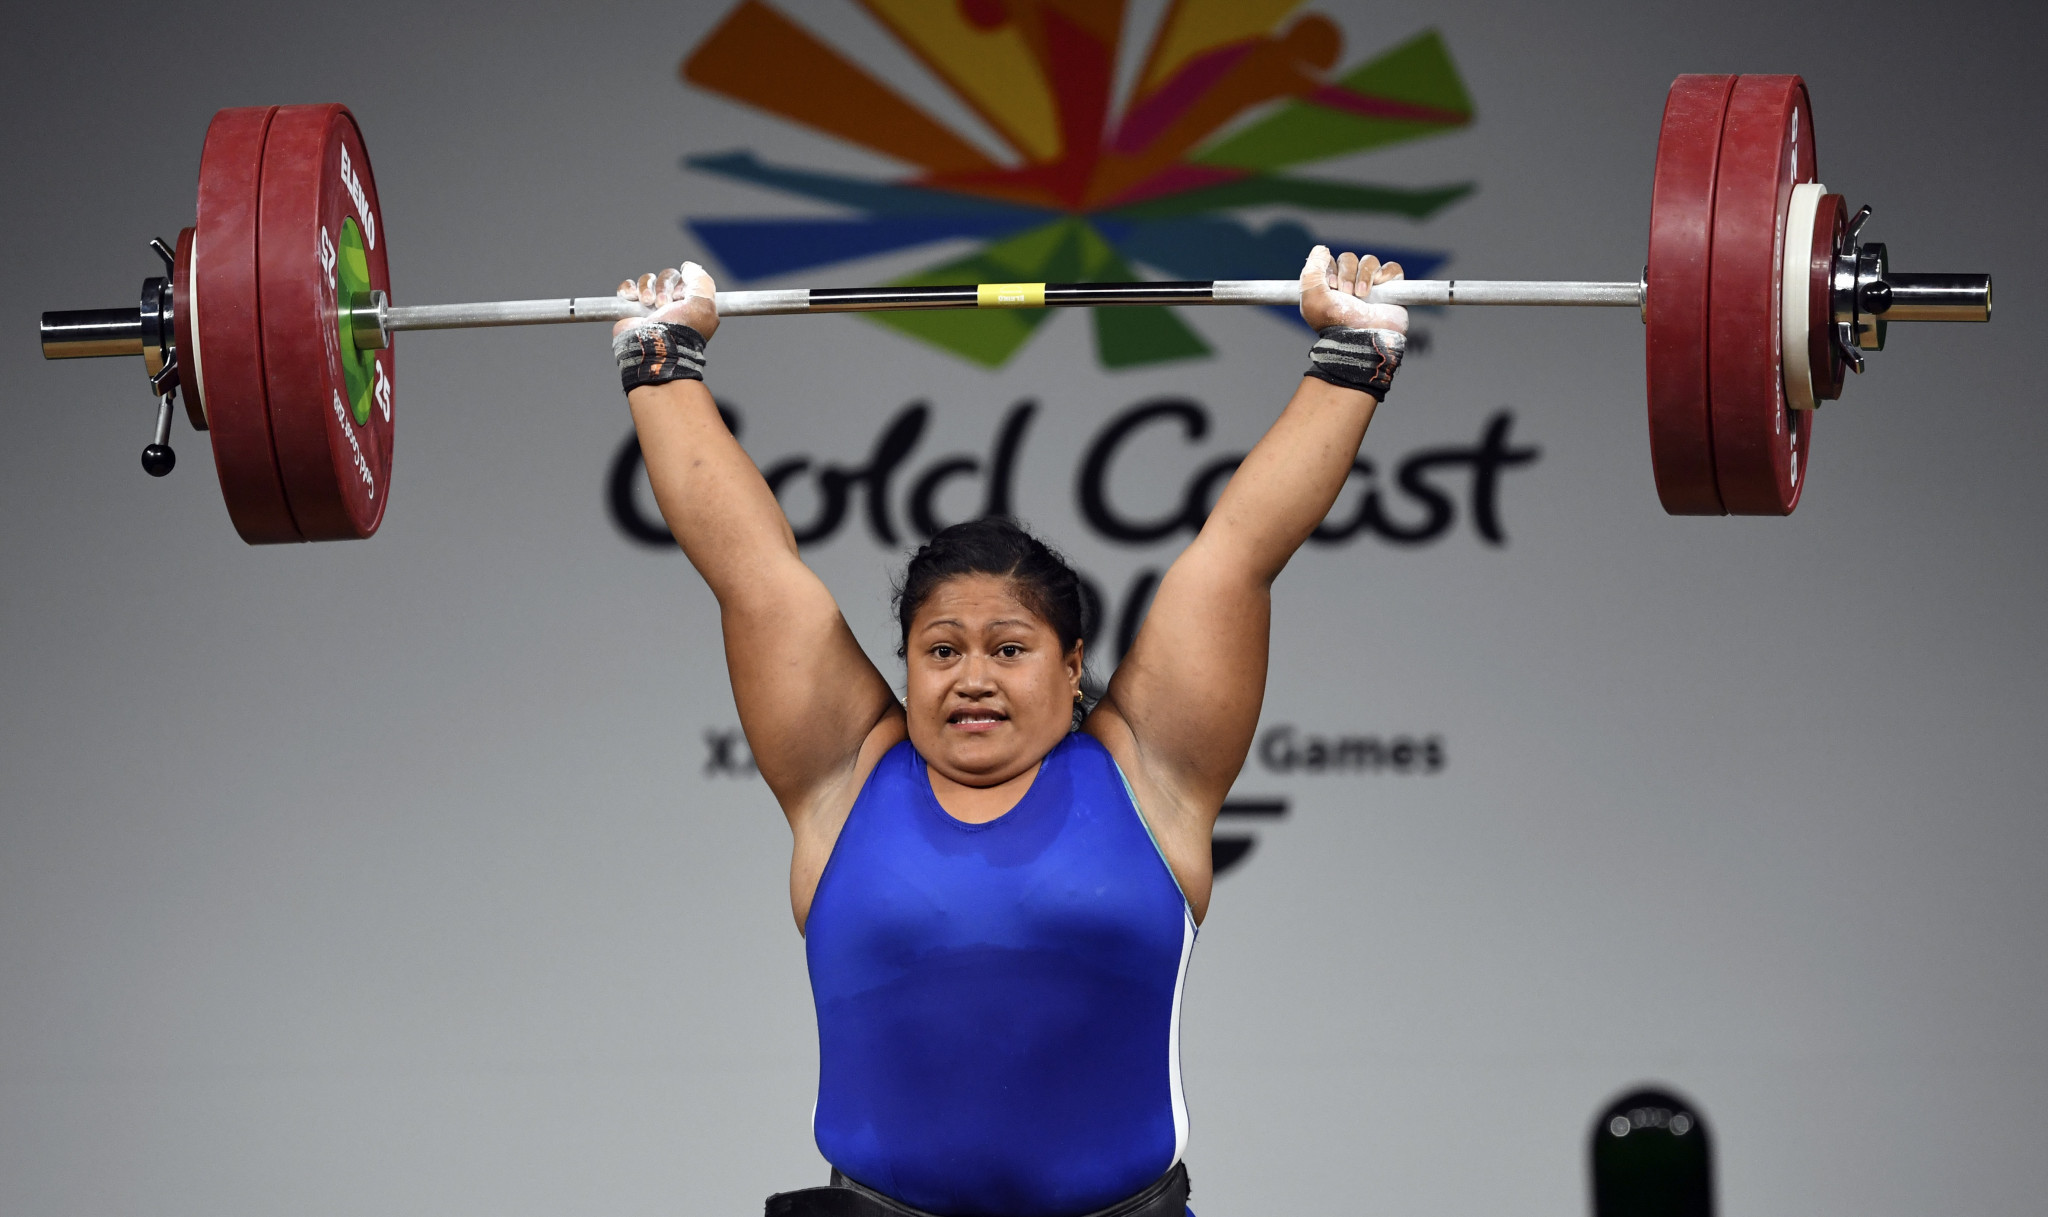 Commonwealth Games champion Feagaiga Stowers finished as the runner-up to Laurel Hubbard ©Getty Images